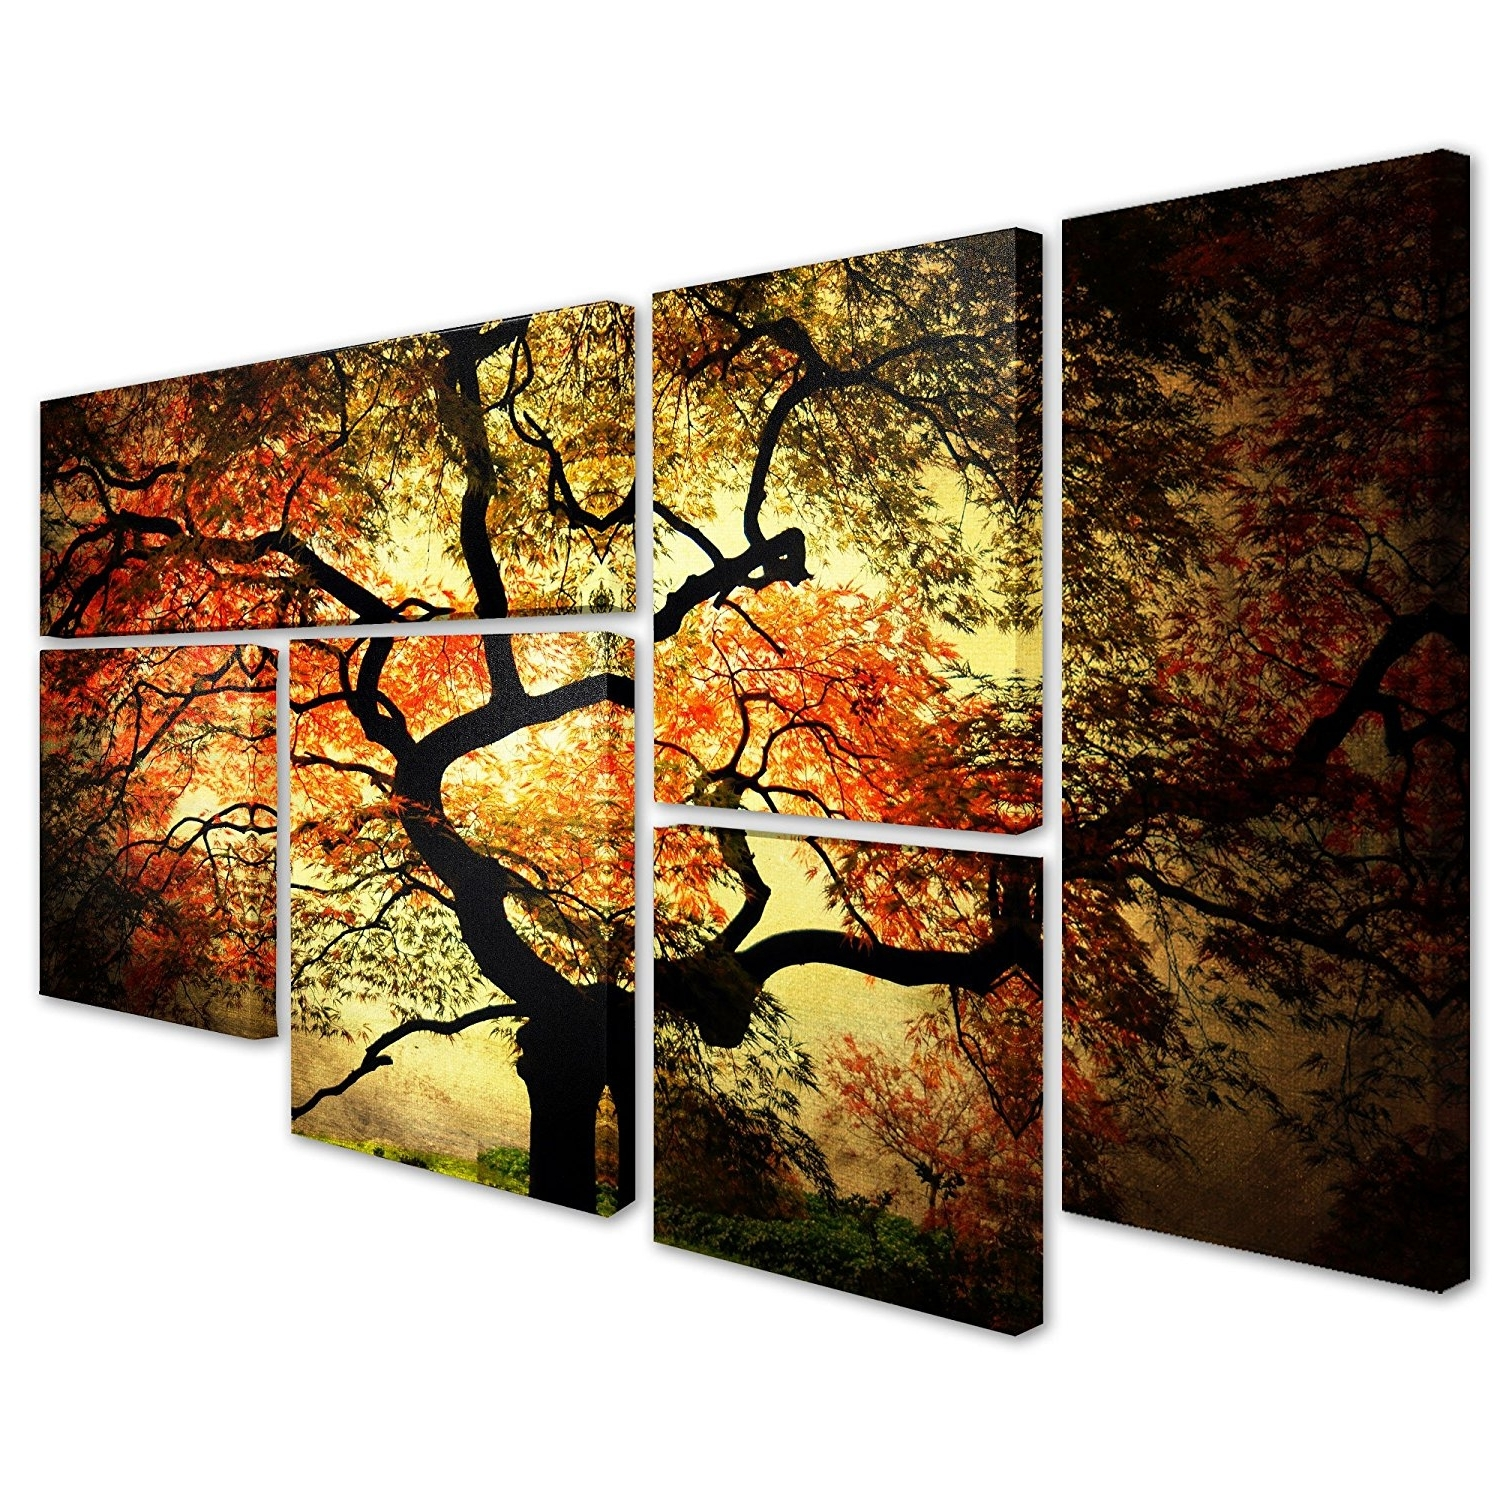 Favorite Amazon: Trademark Fine Art Japanesephilippe Sainte Laudy Regarding Japanese Canvas Wall Art (View 4 of 15)